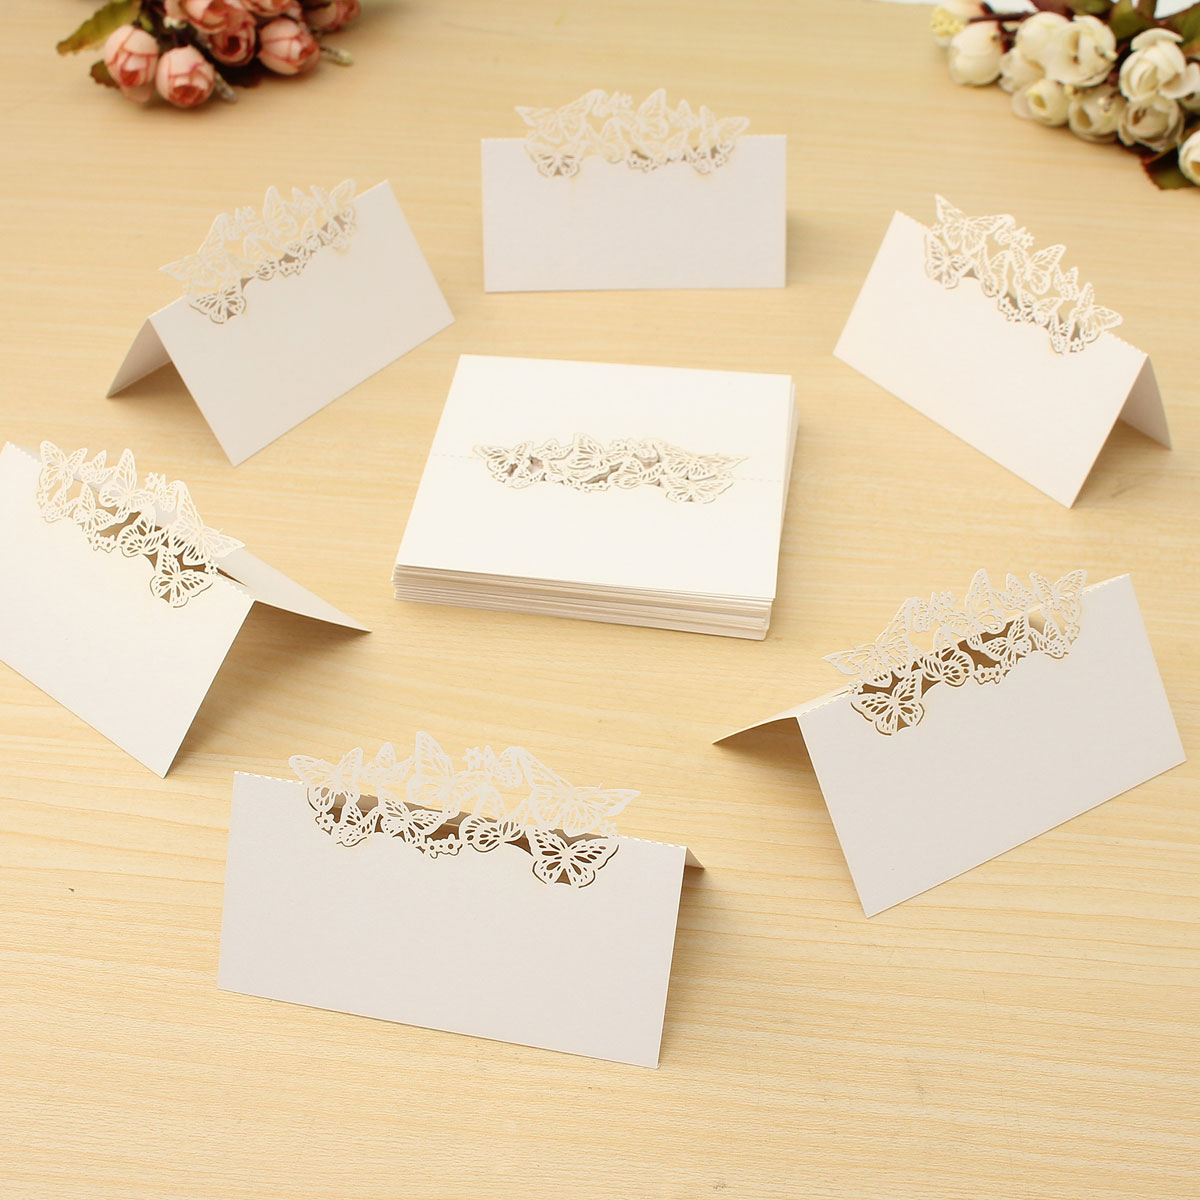 Birthday Party Place Cards Narco Penantly Co